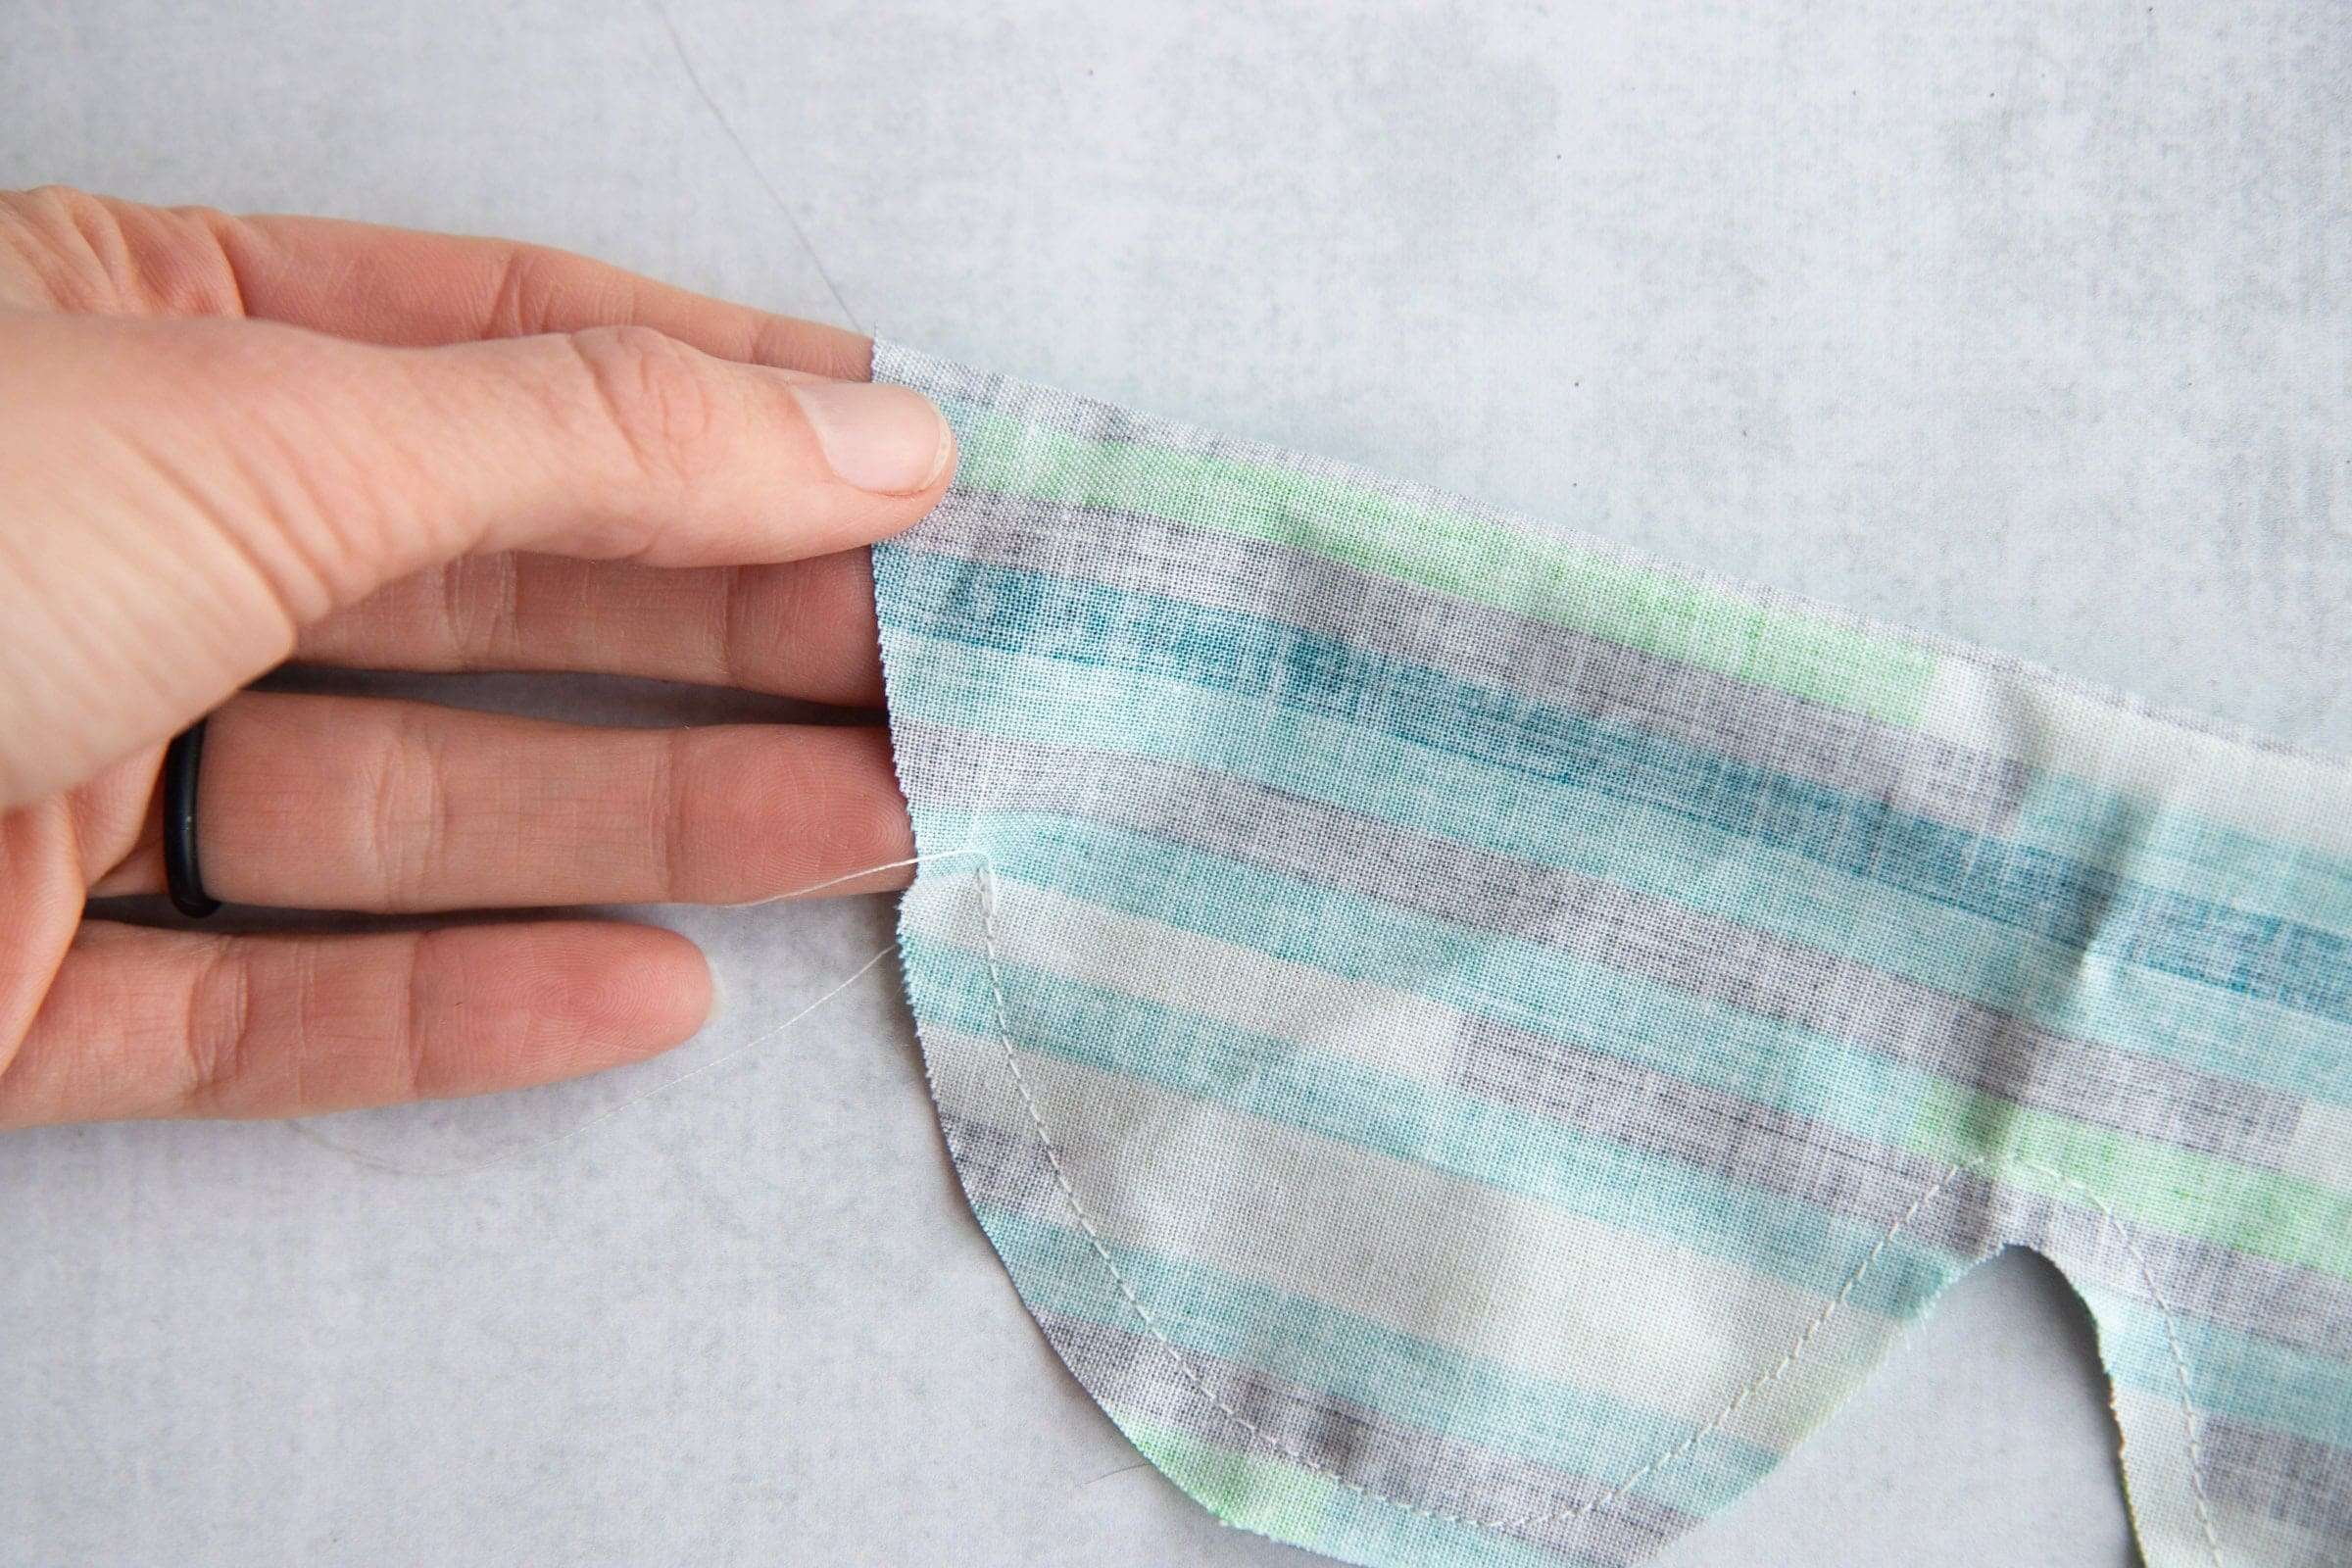 Hand holding fabric for a Soothing Headache Eye Mask that is mostly stitched but has an opening left